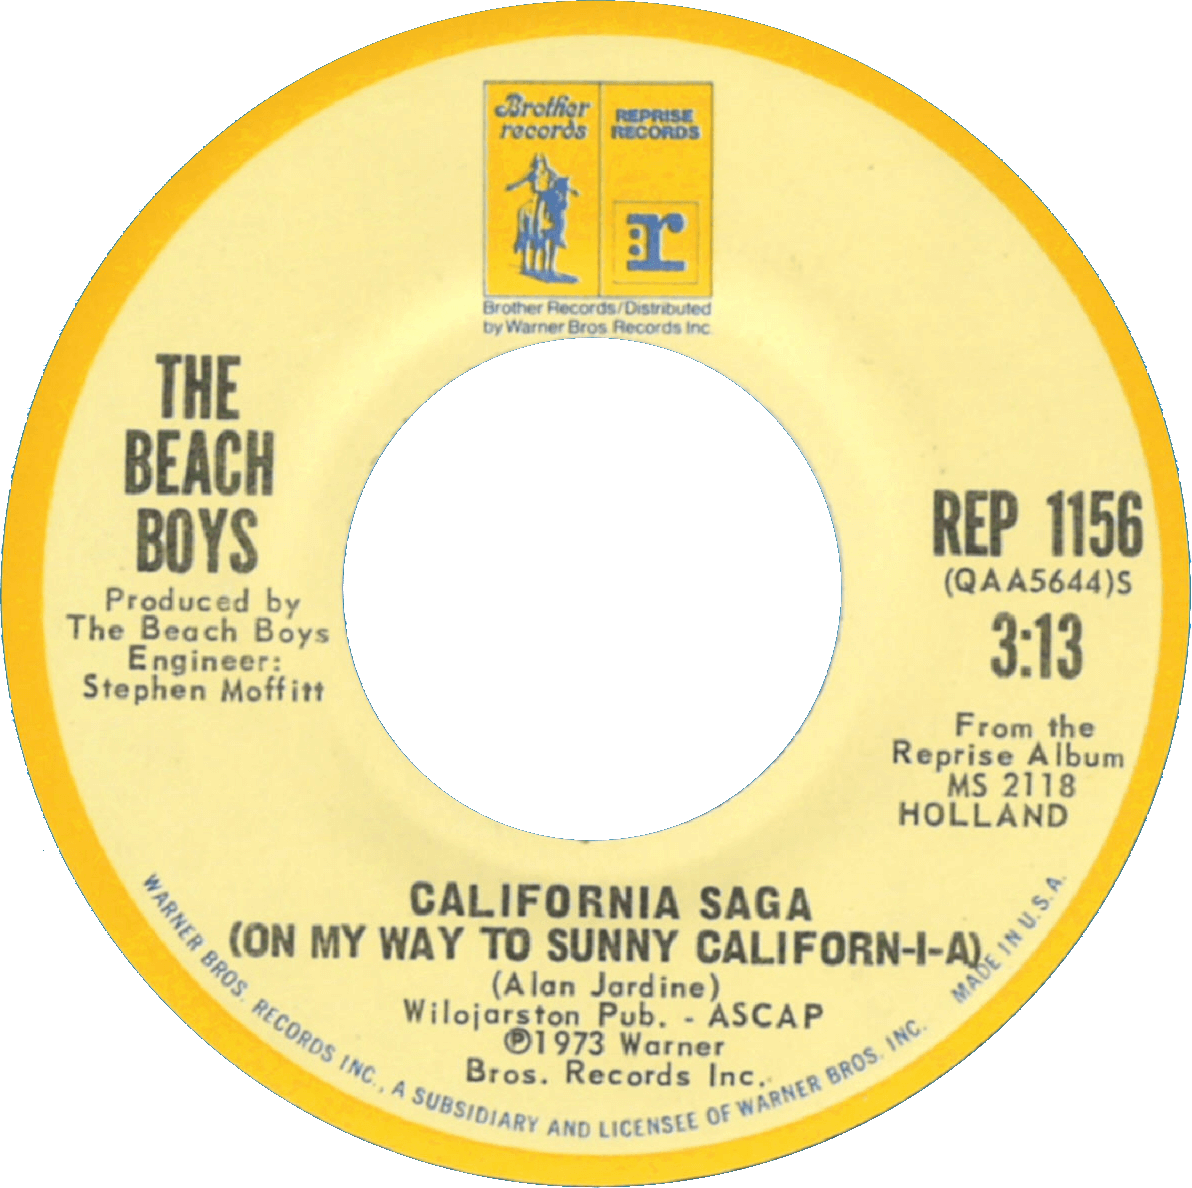 California Saga cover